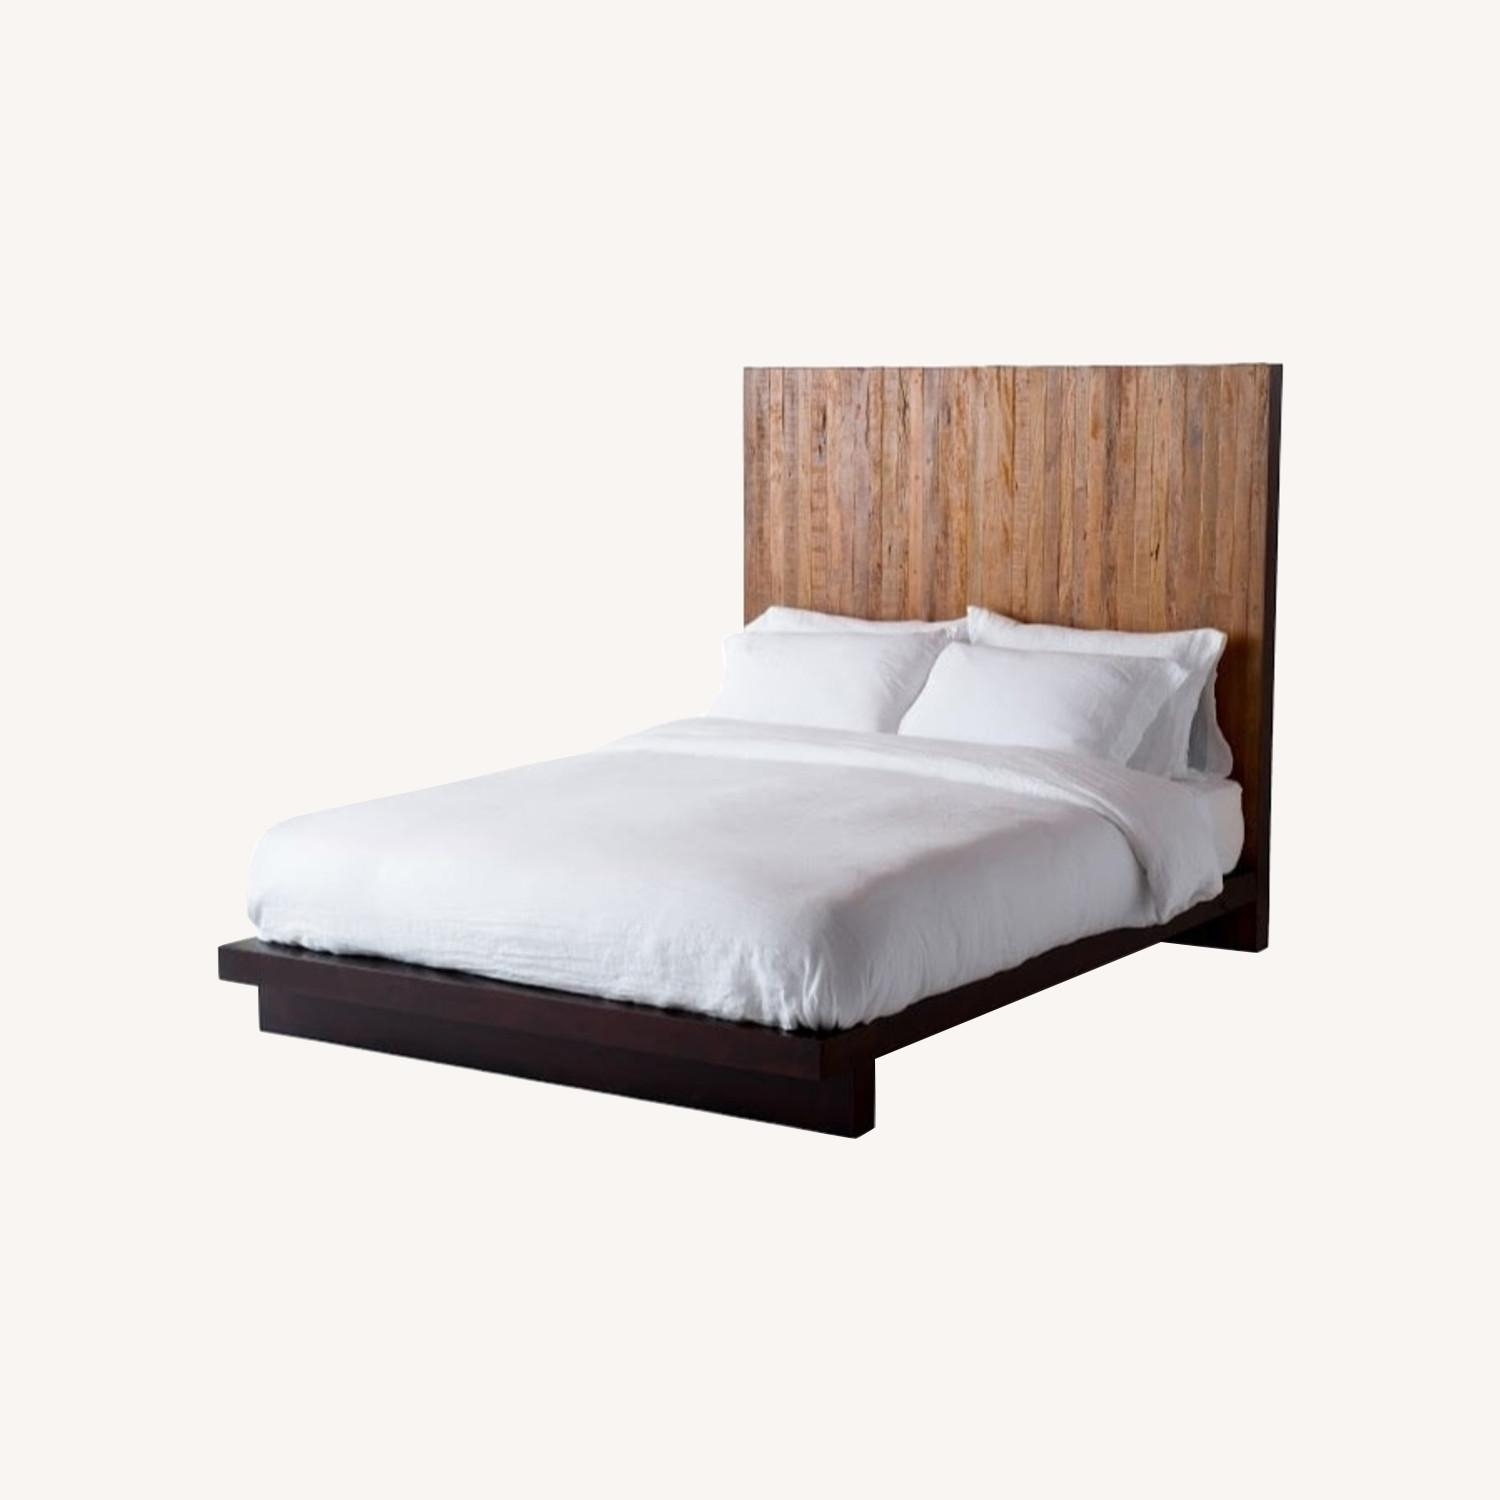 Environment Furniture Reclaimed Brazilian Peroba Wood Bed - image-6